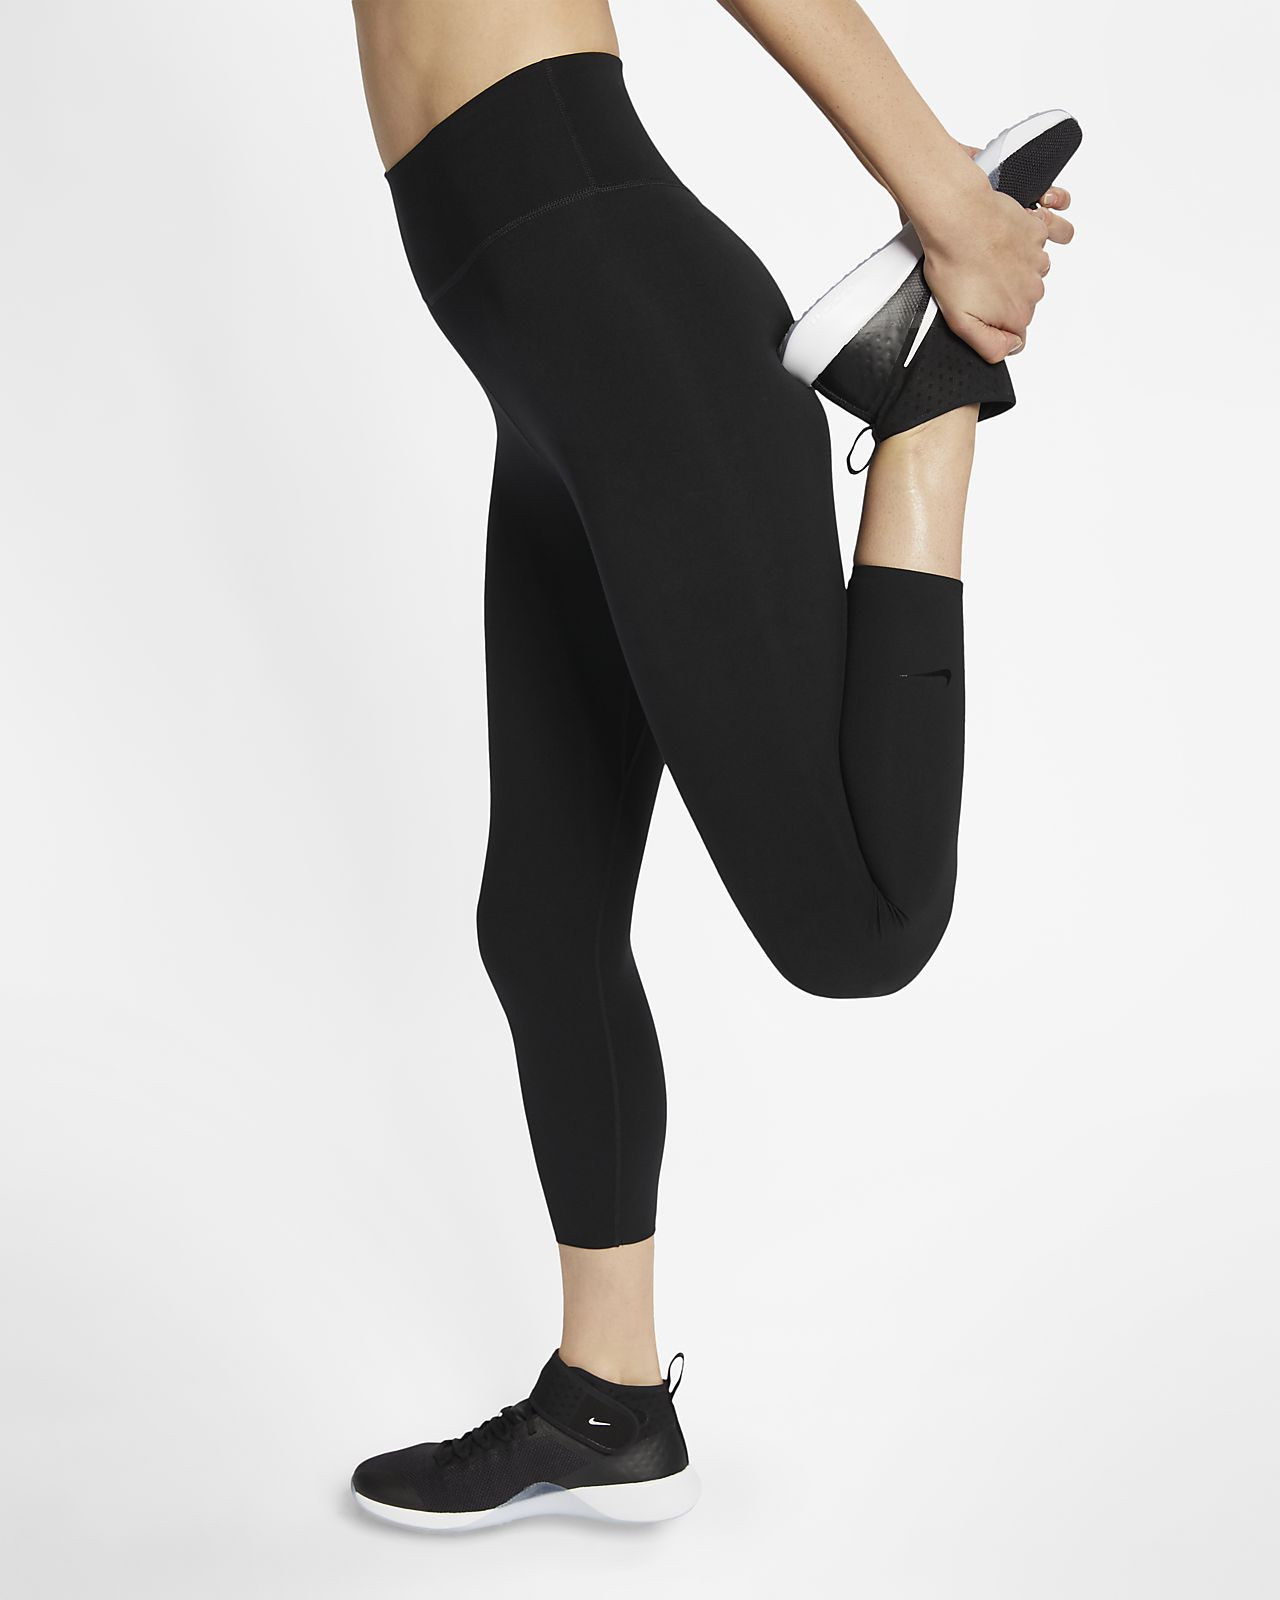 Nike One Luxe Women's Cropped Tights